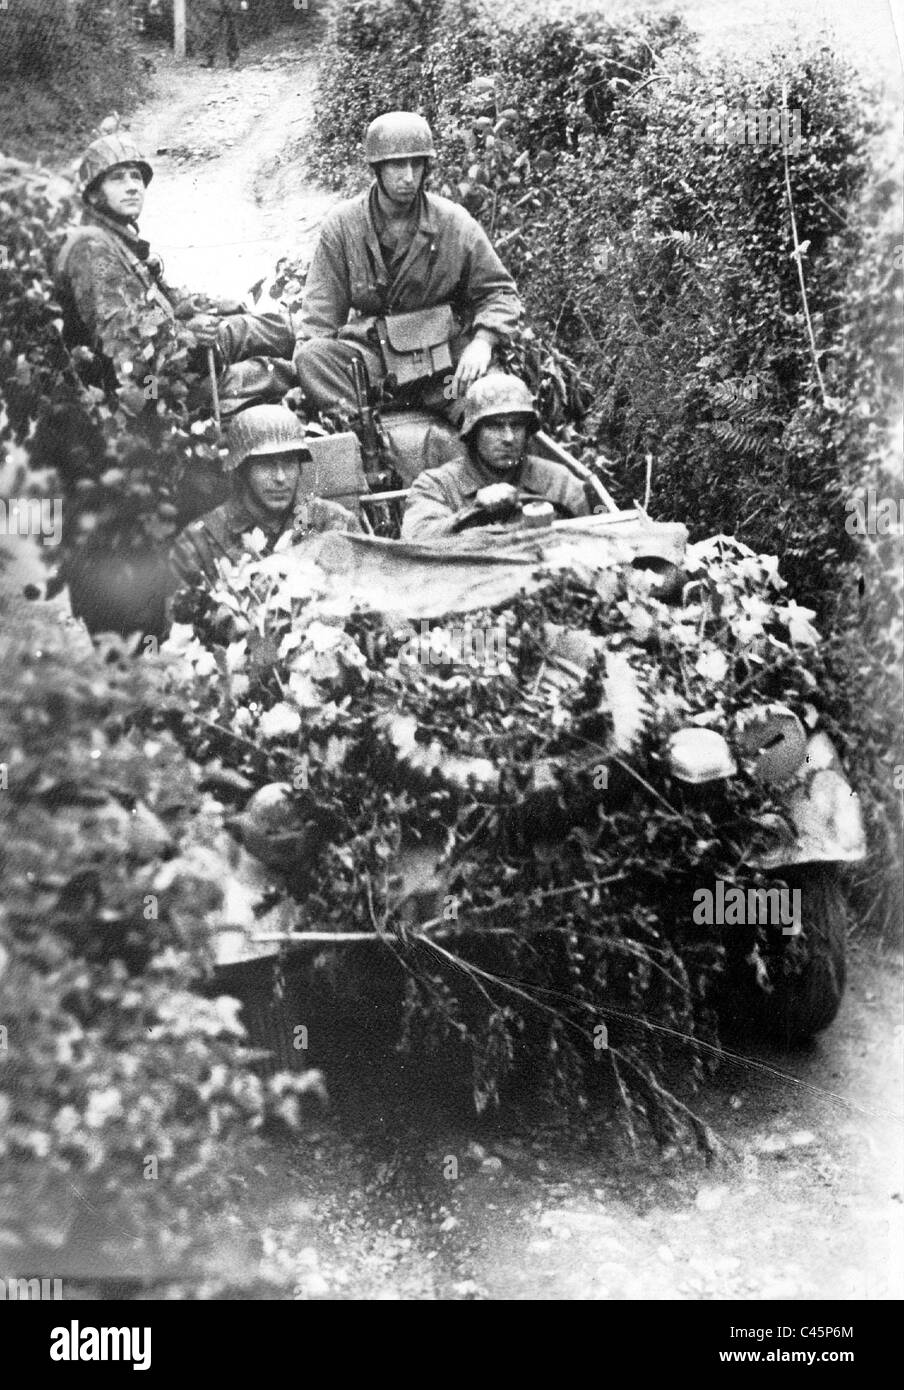 German patrol on the Western Front, 1944 - Stock Image